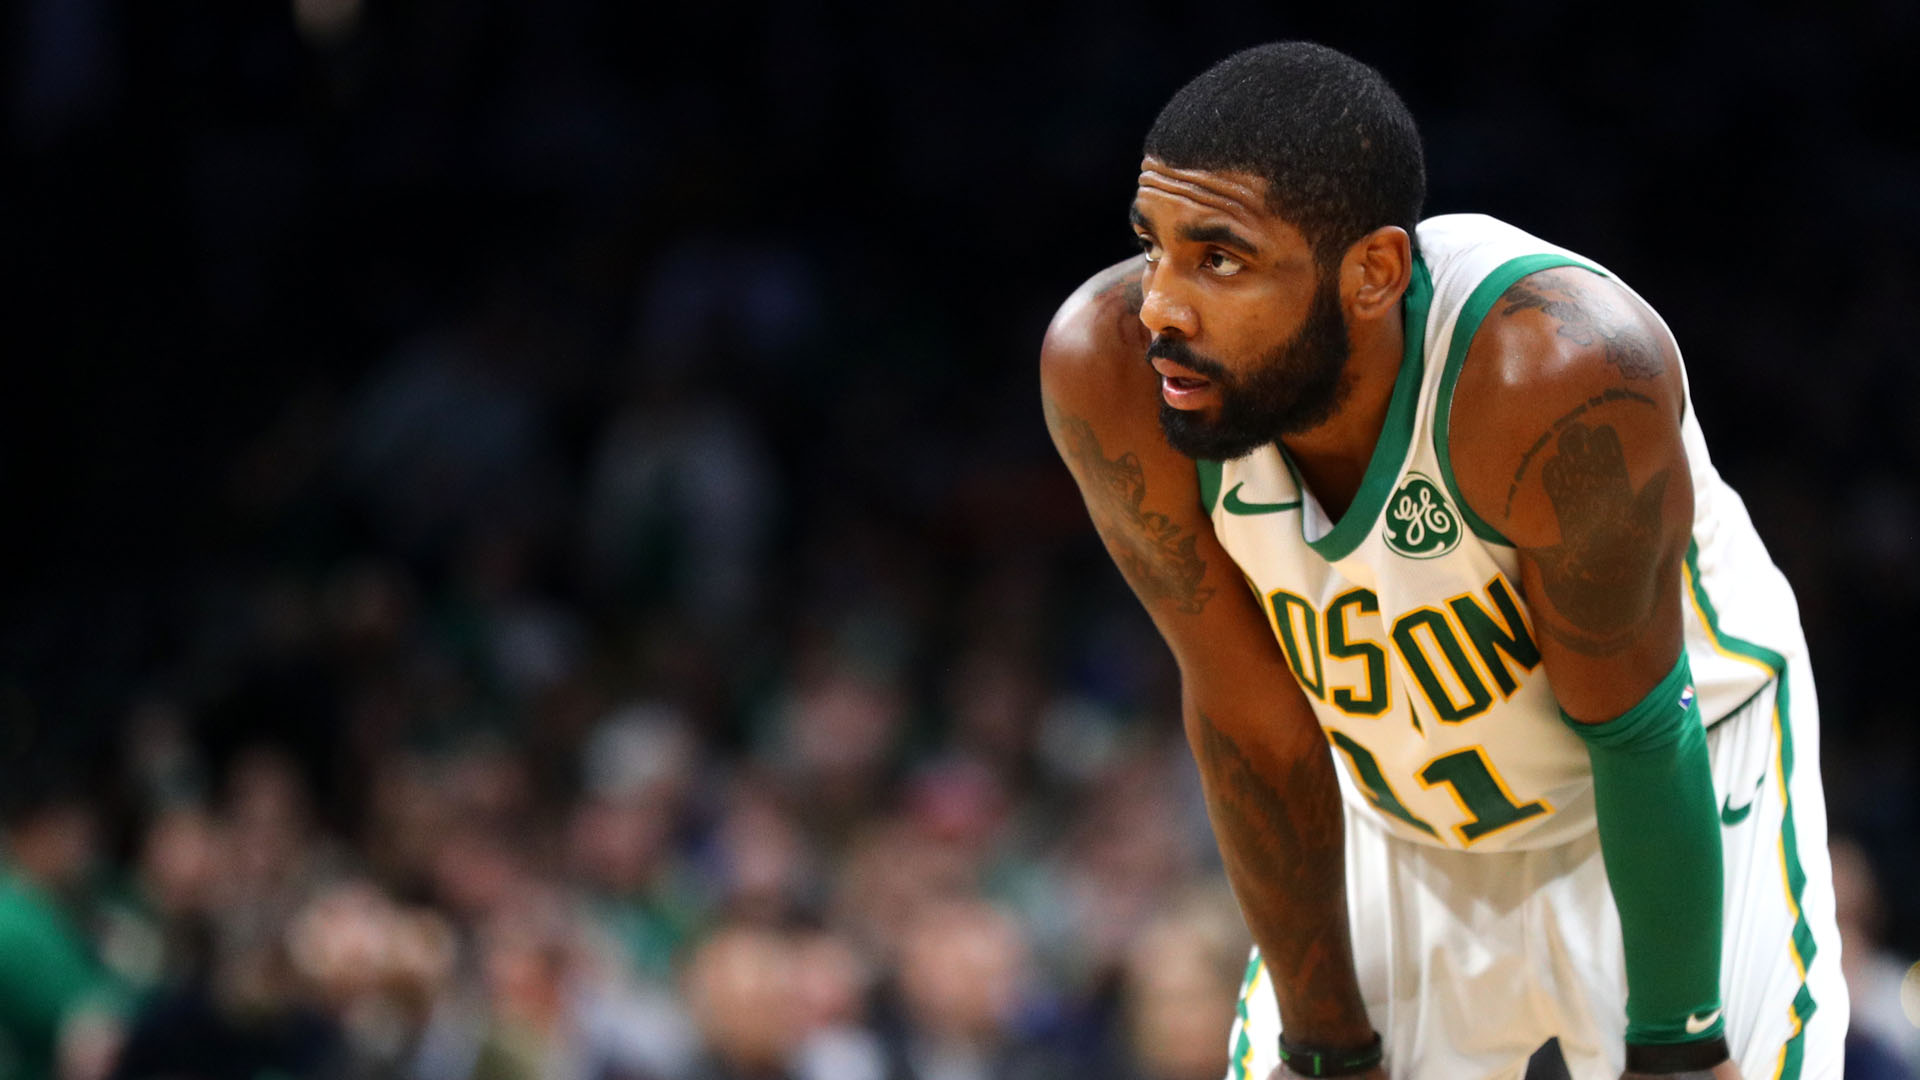 Kyrie Irving , HD Wallpaper & Backgrounds